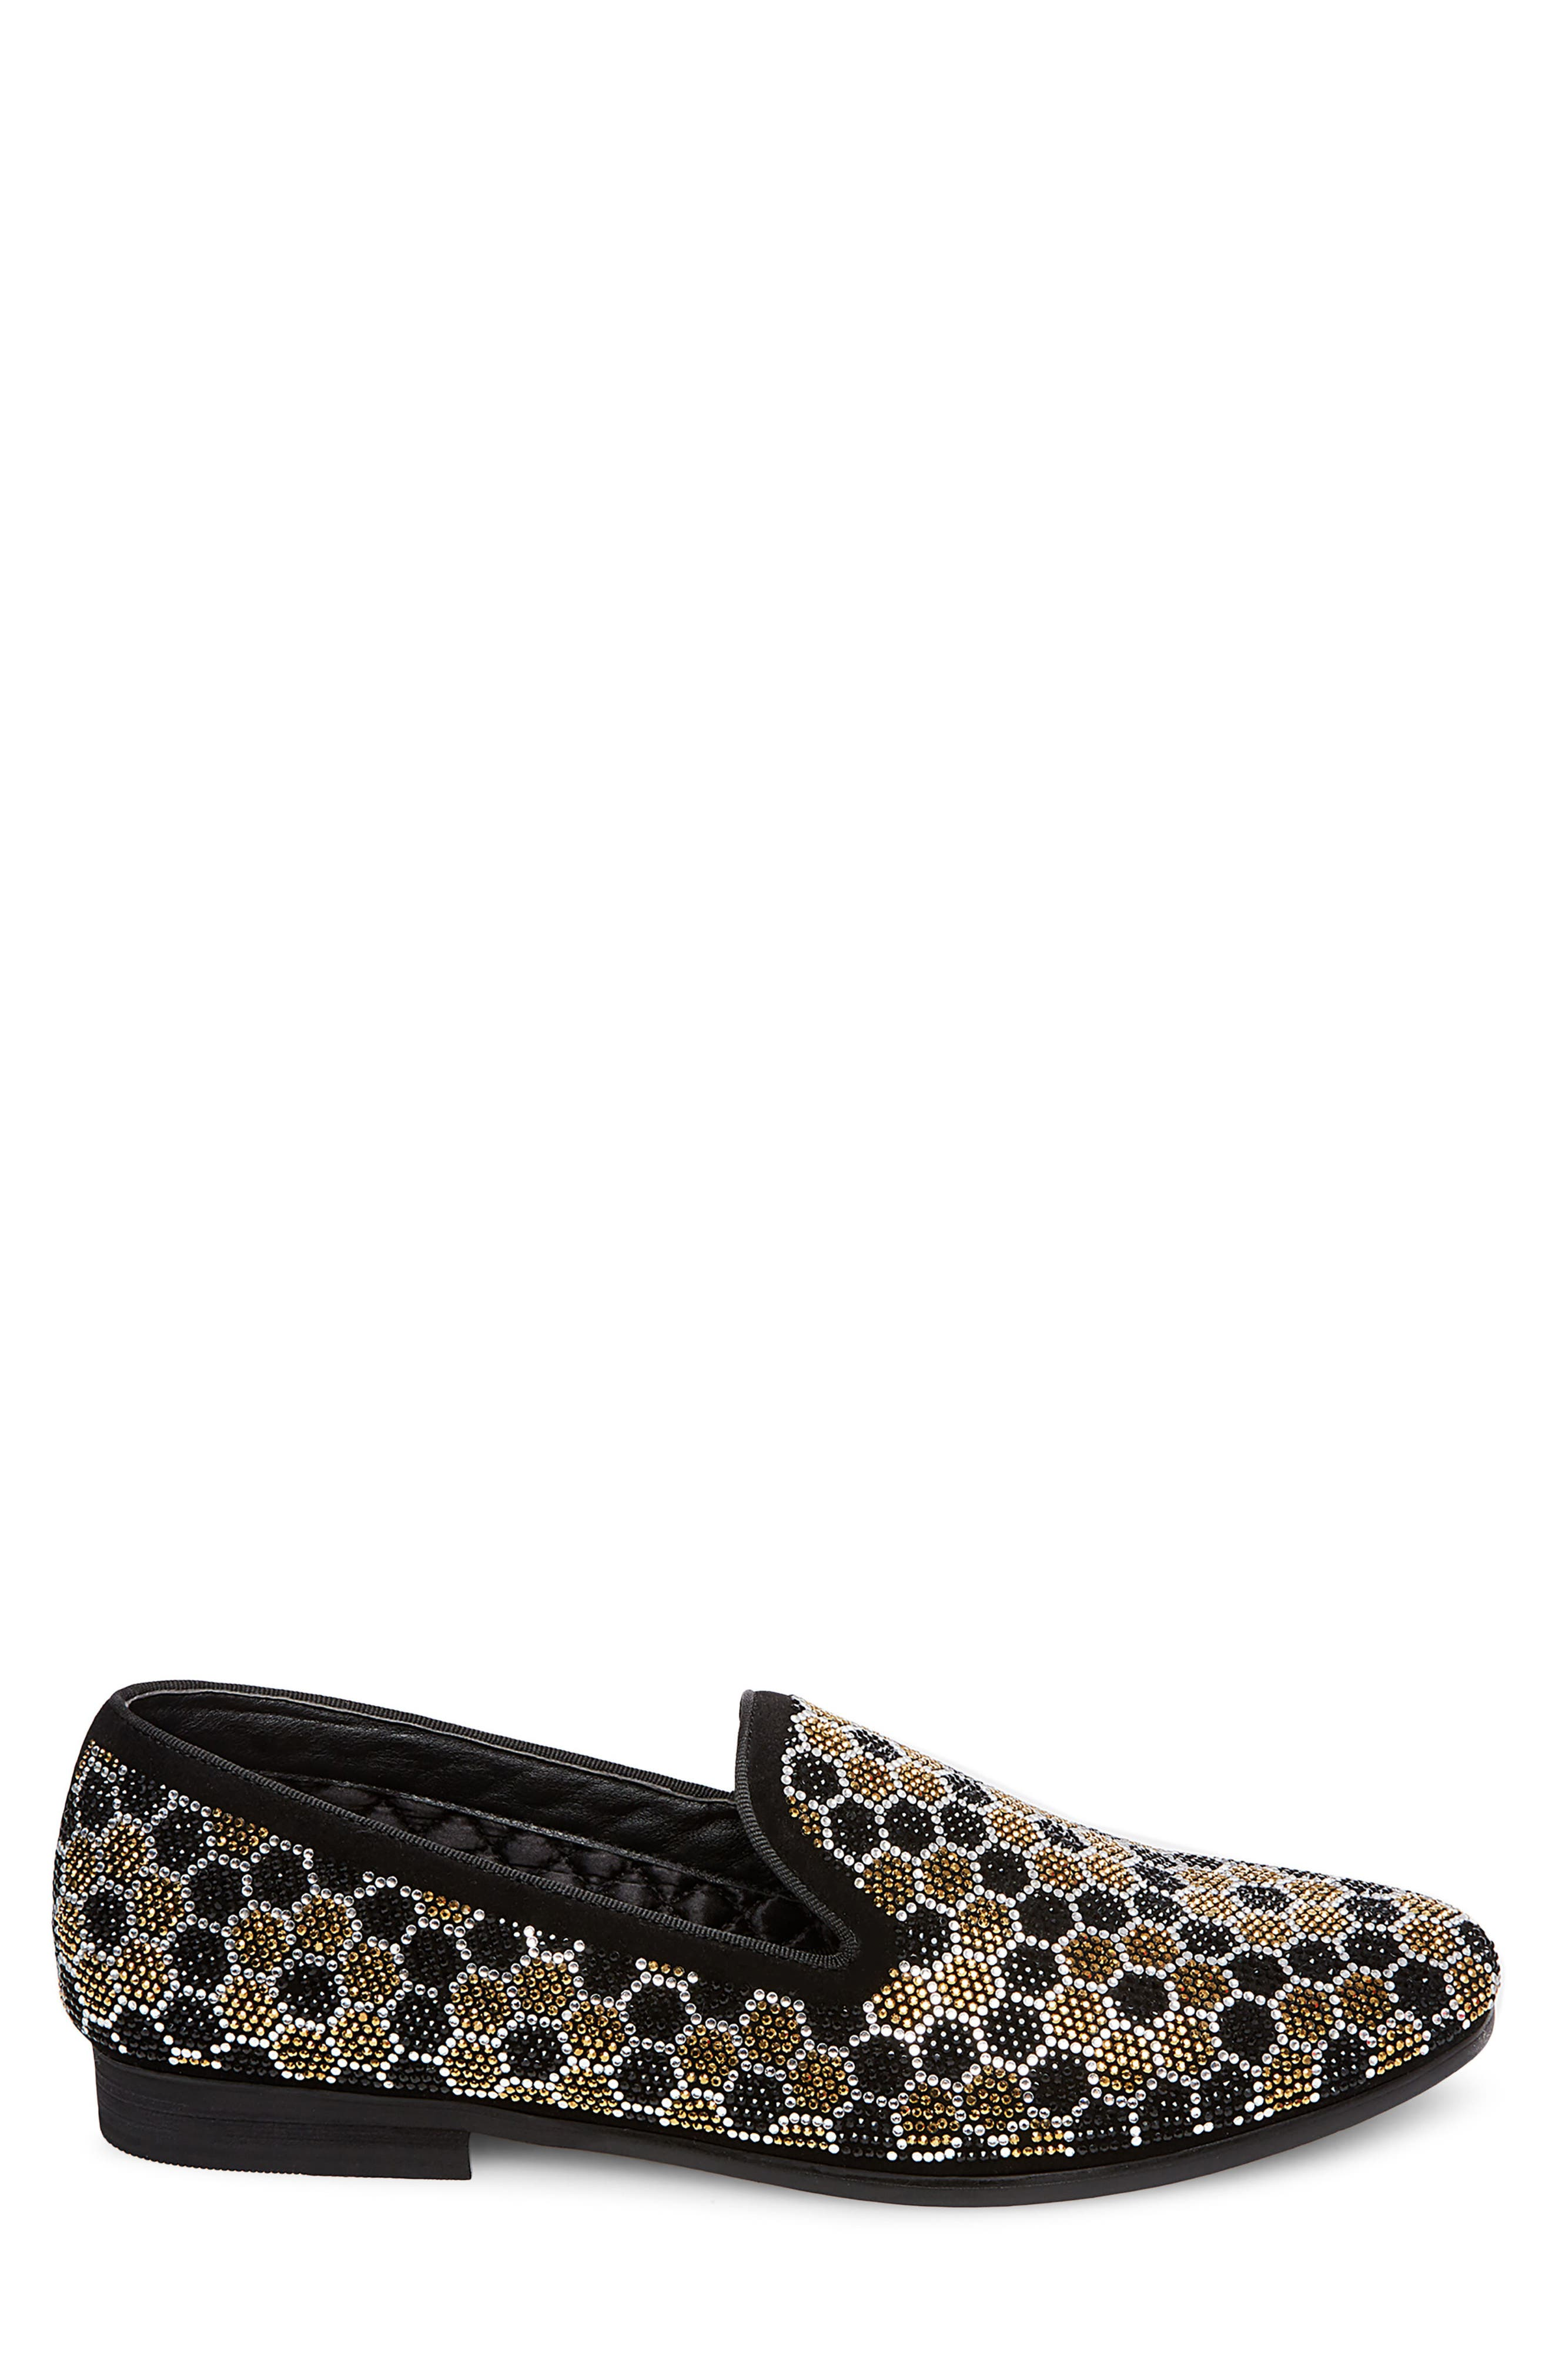 Caspian Studded Venetian Loafer,                             Alternate thumbnail 3, color,                             003